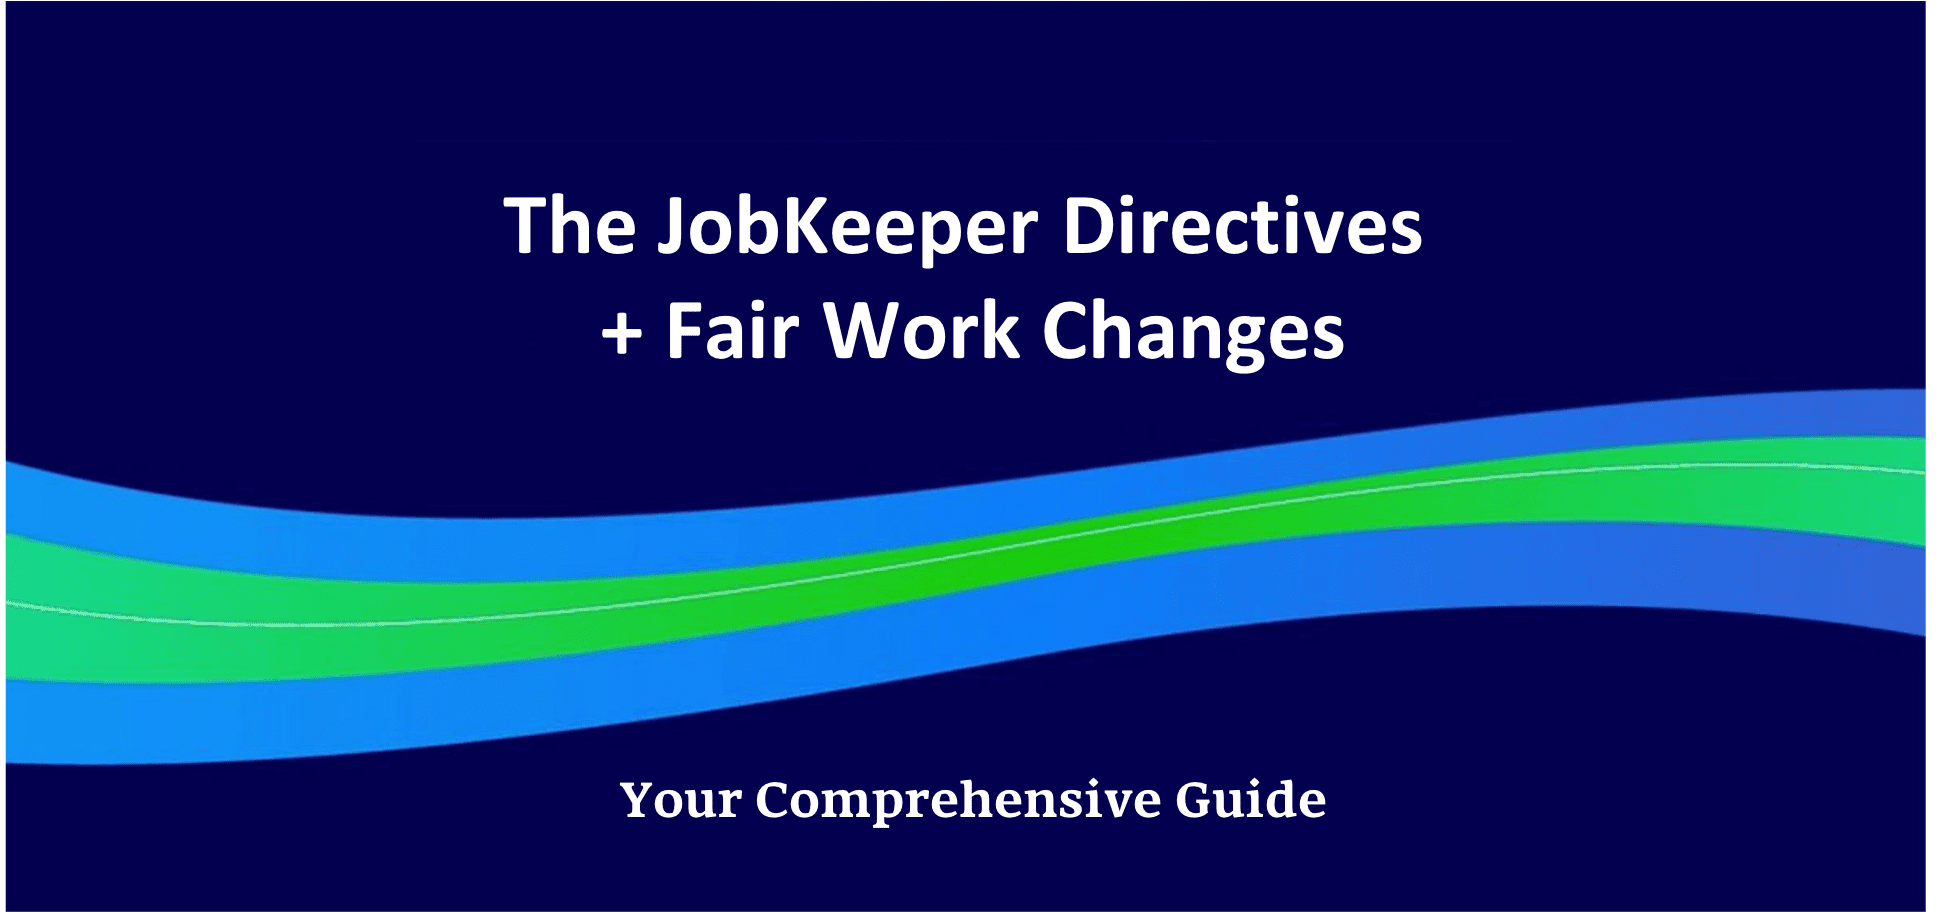 The JobKeeper Directives + Fair Work Changes